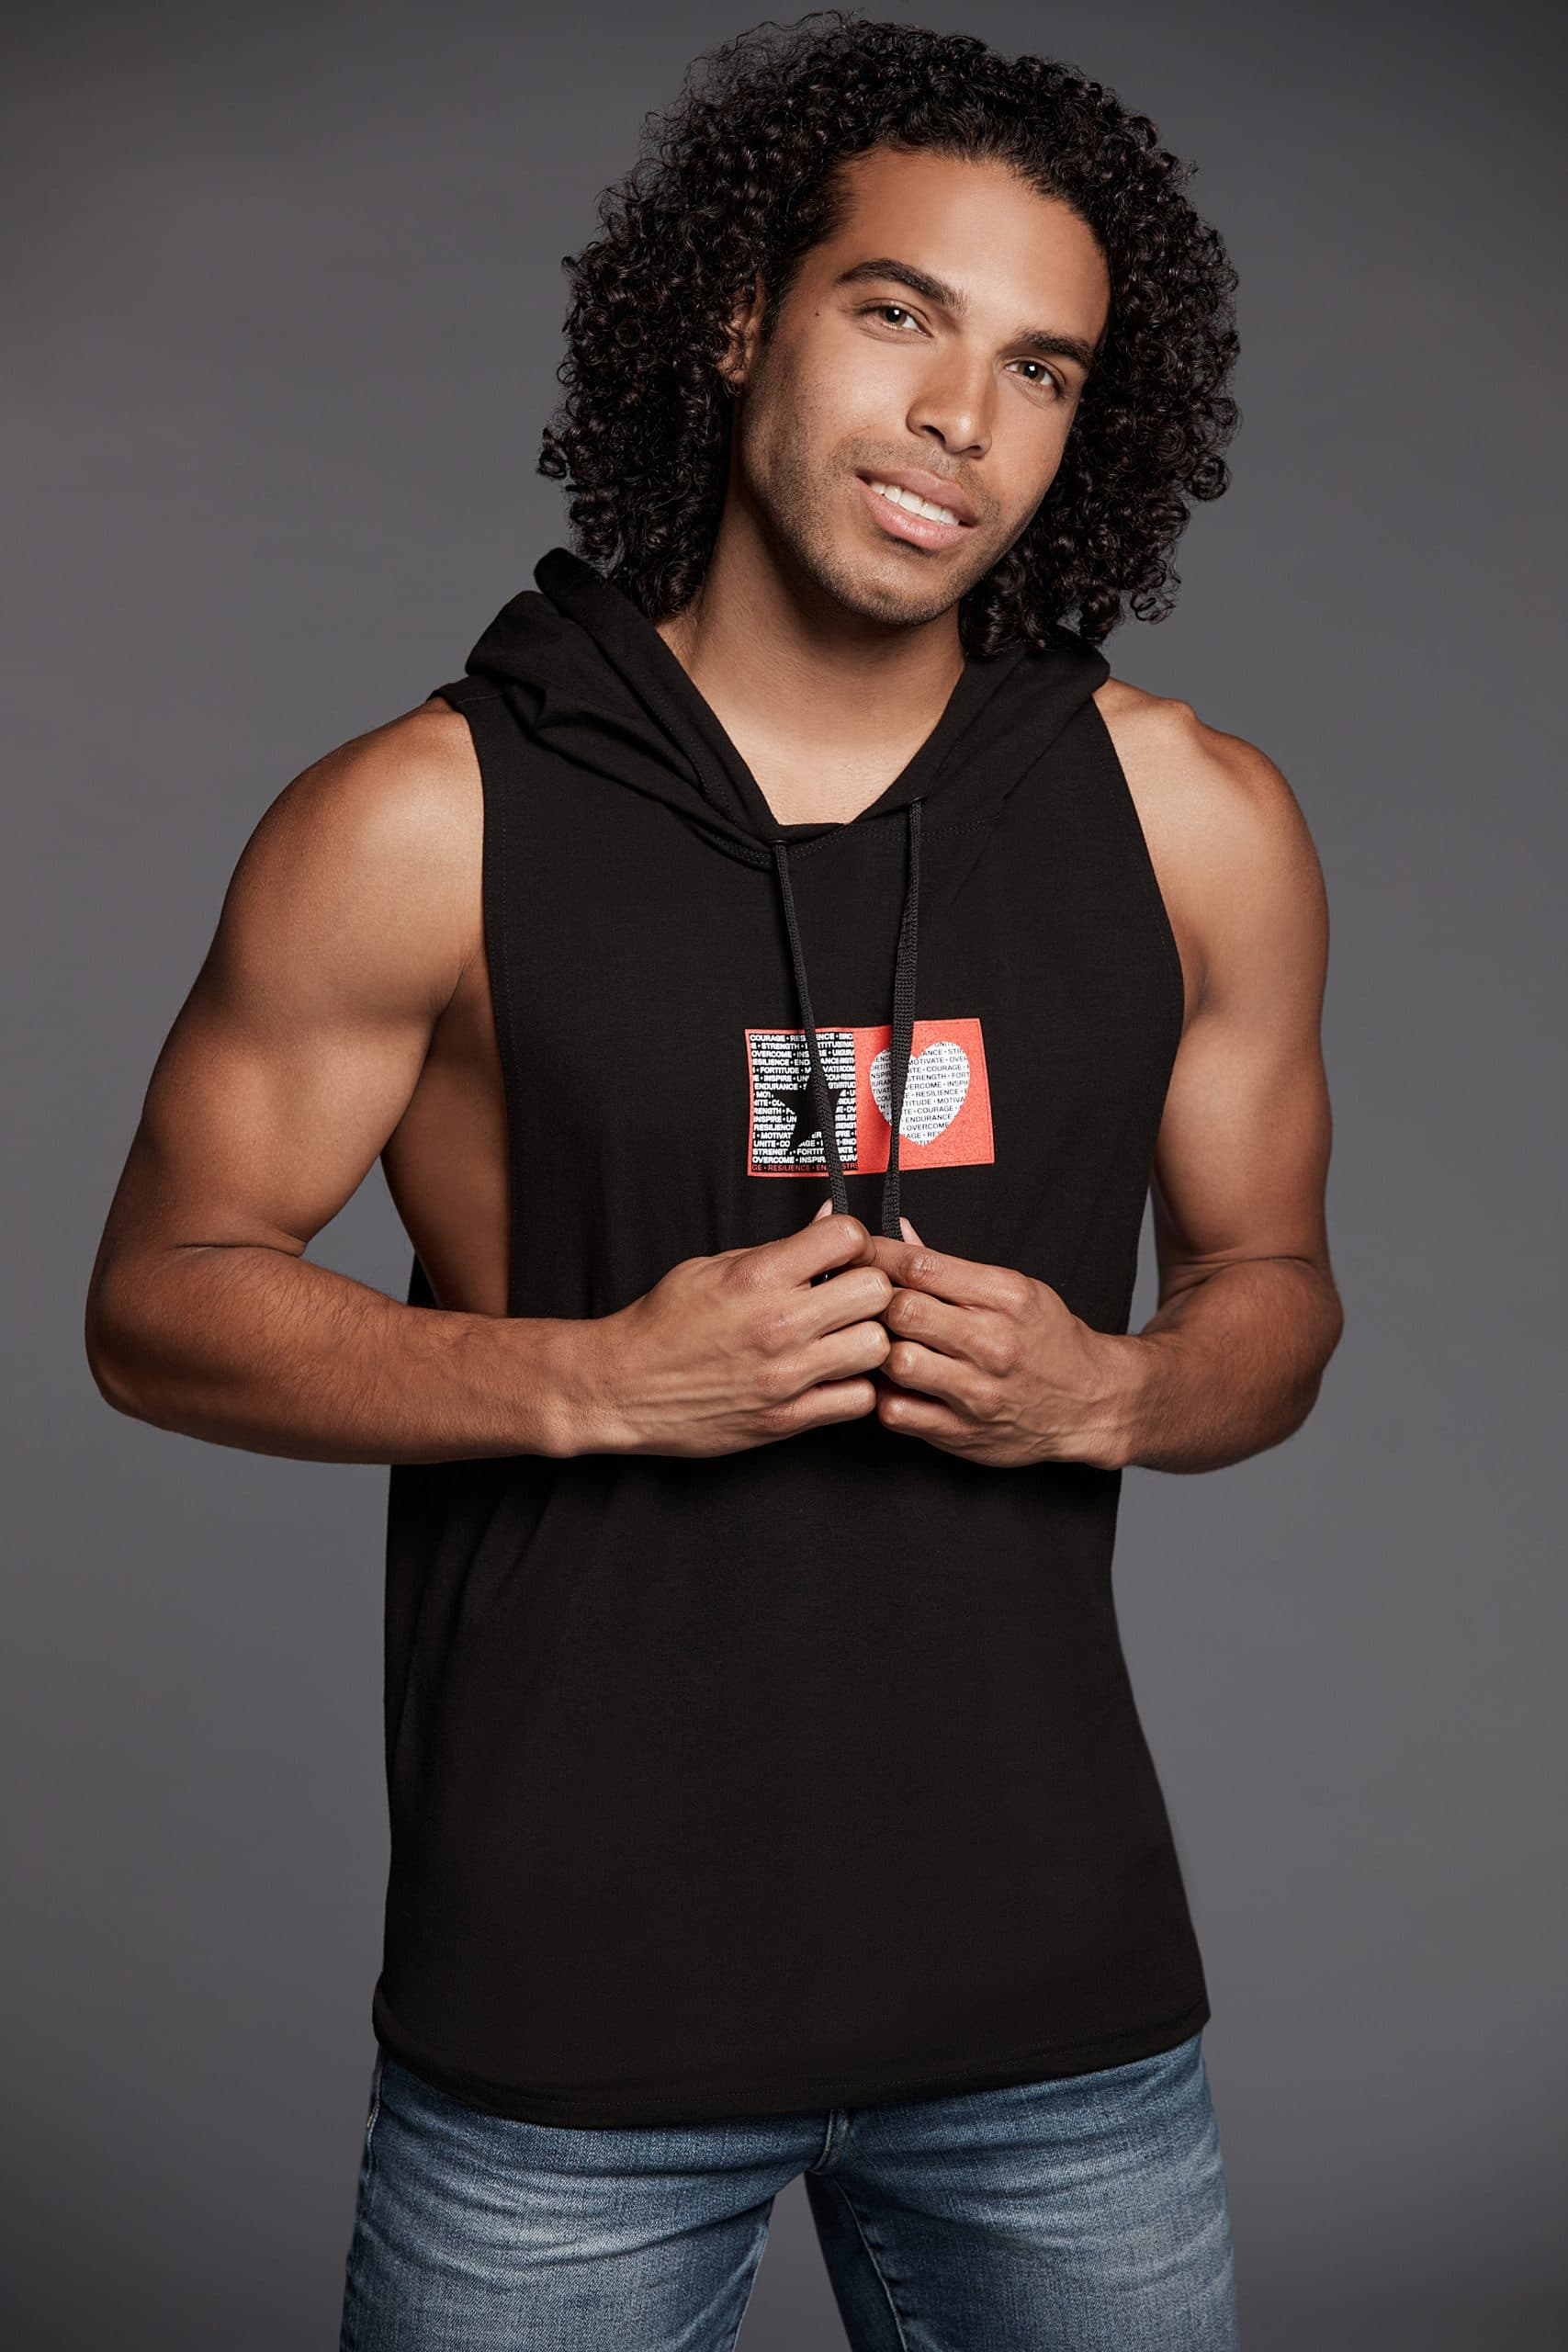 Star Heart Men's Empowerment Tank - Hooded